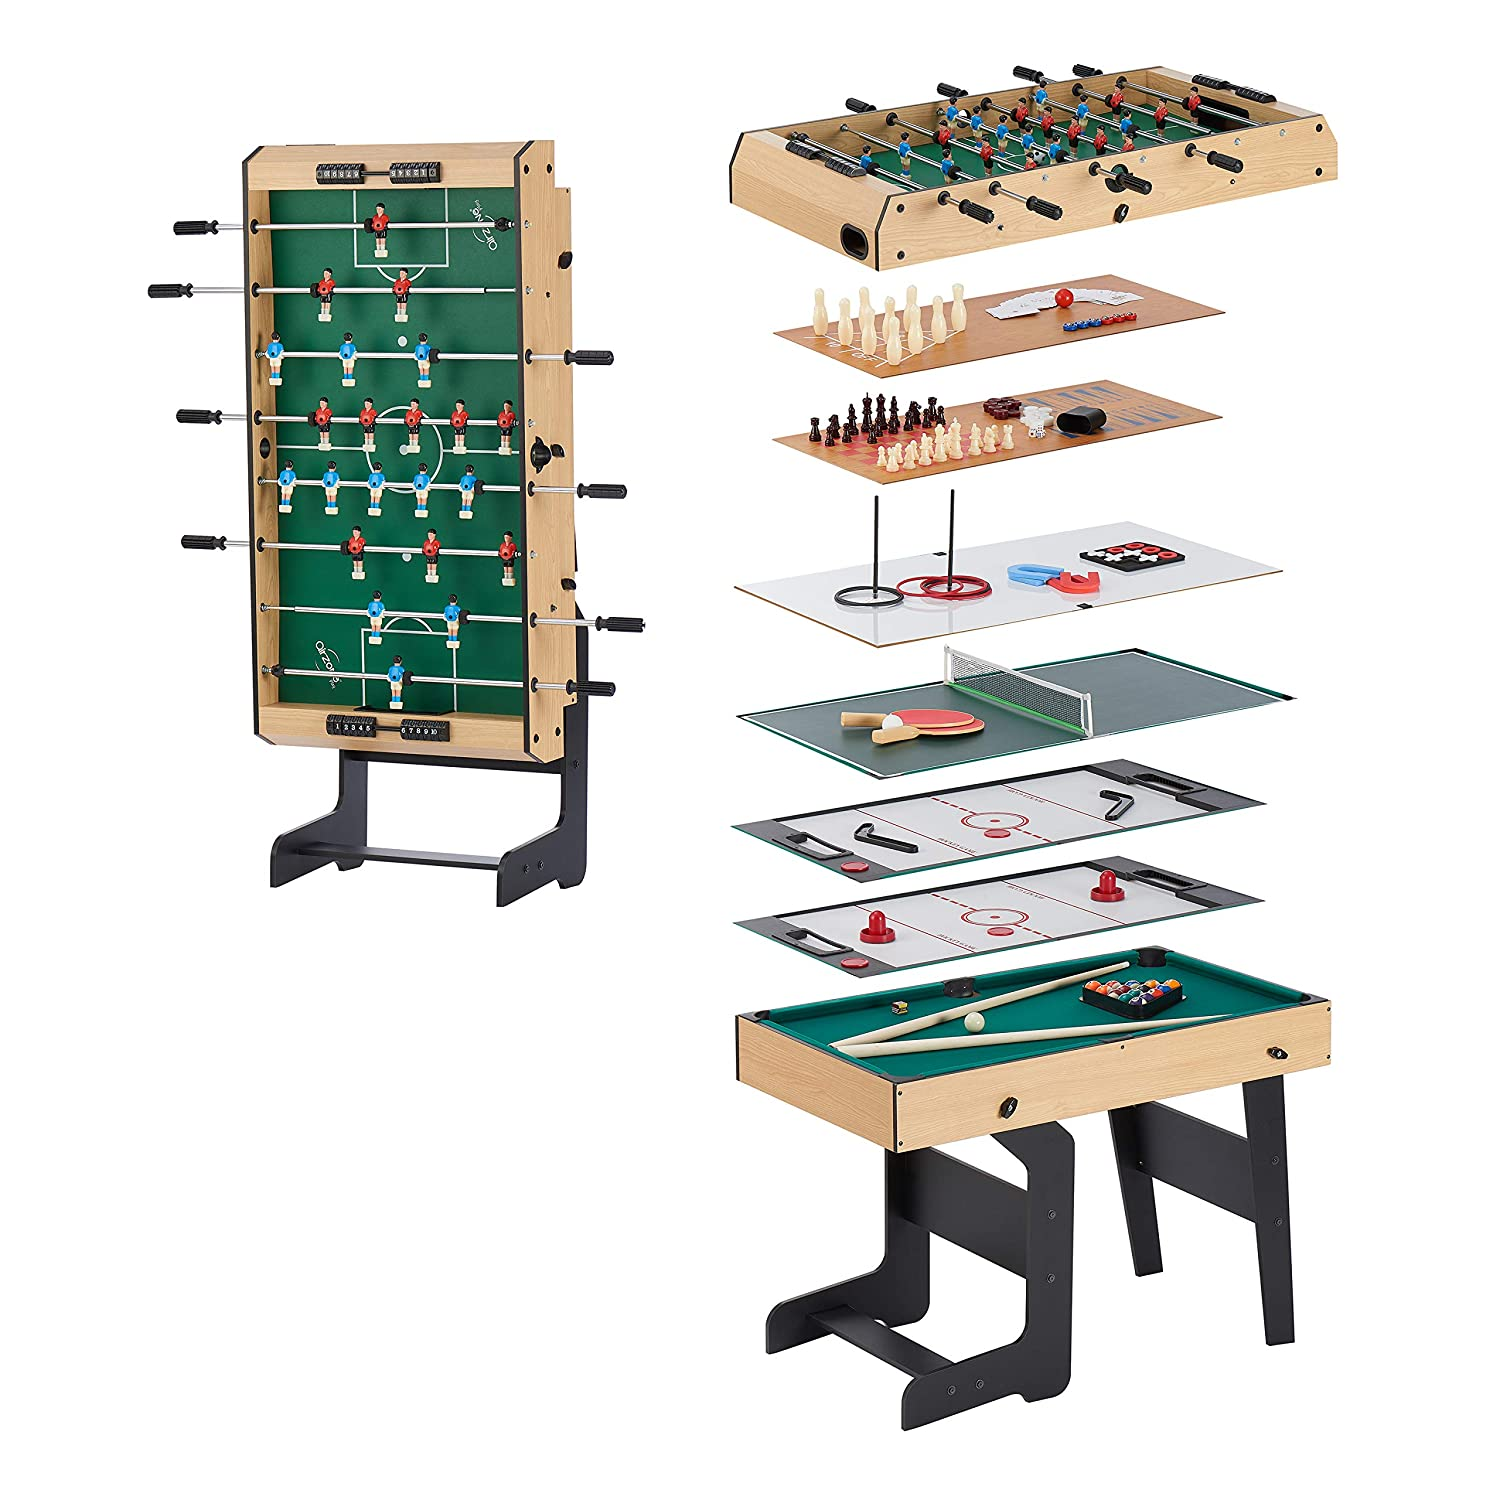 Aromzen 16-in-1 Folding Junior Multi Game Table with Accessories ...